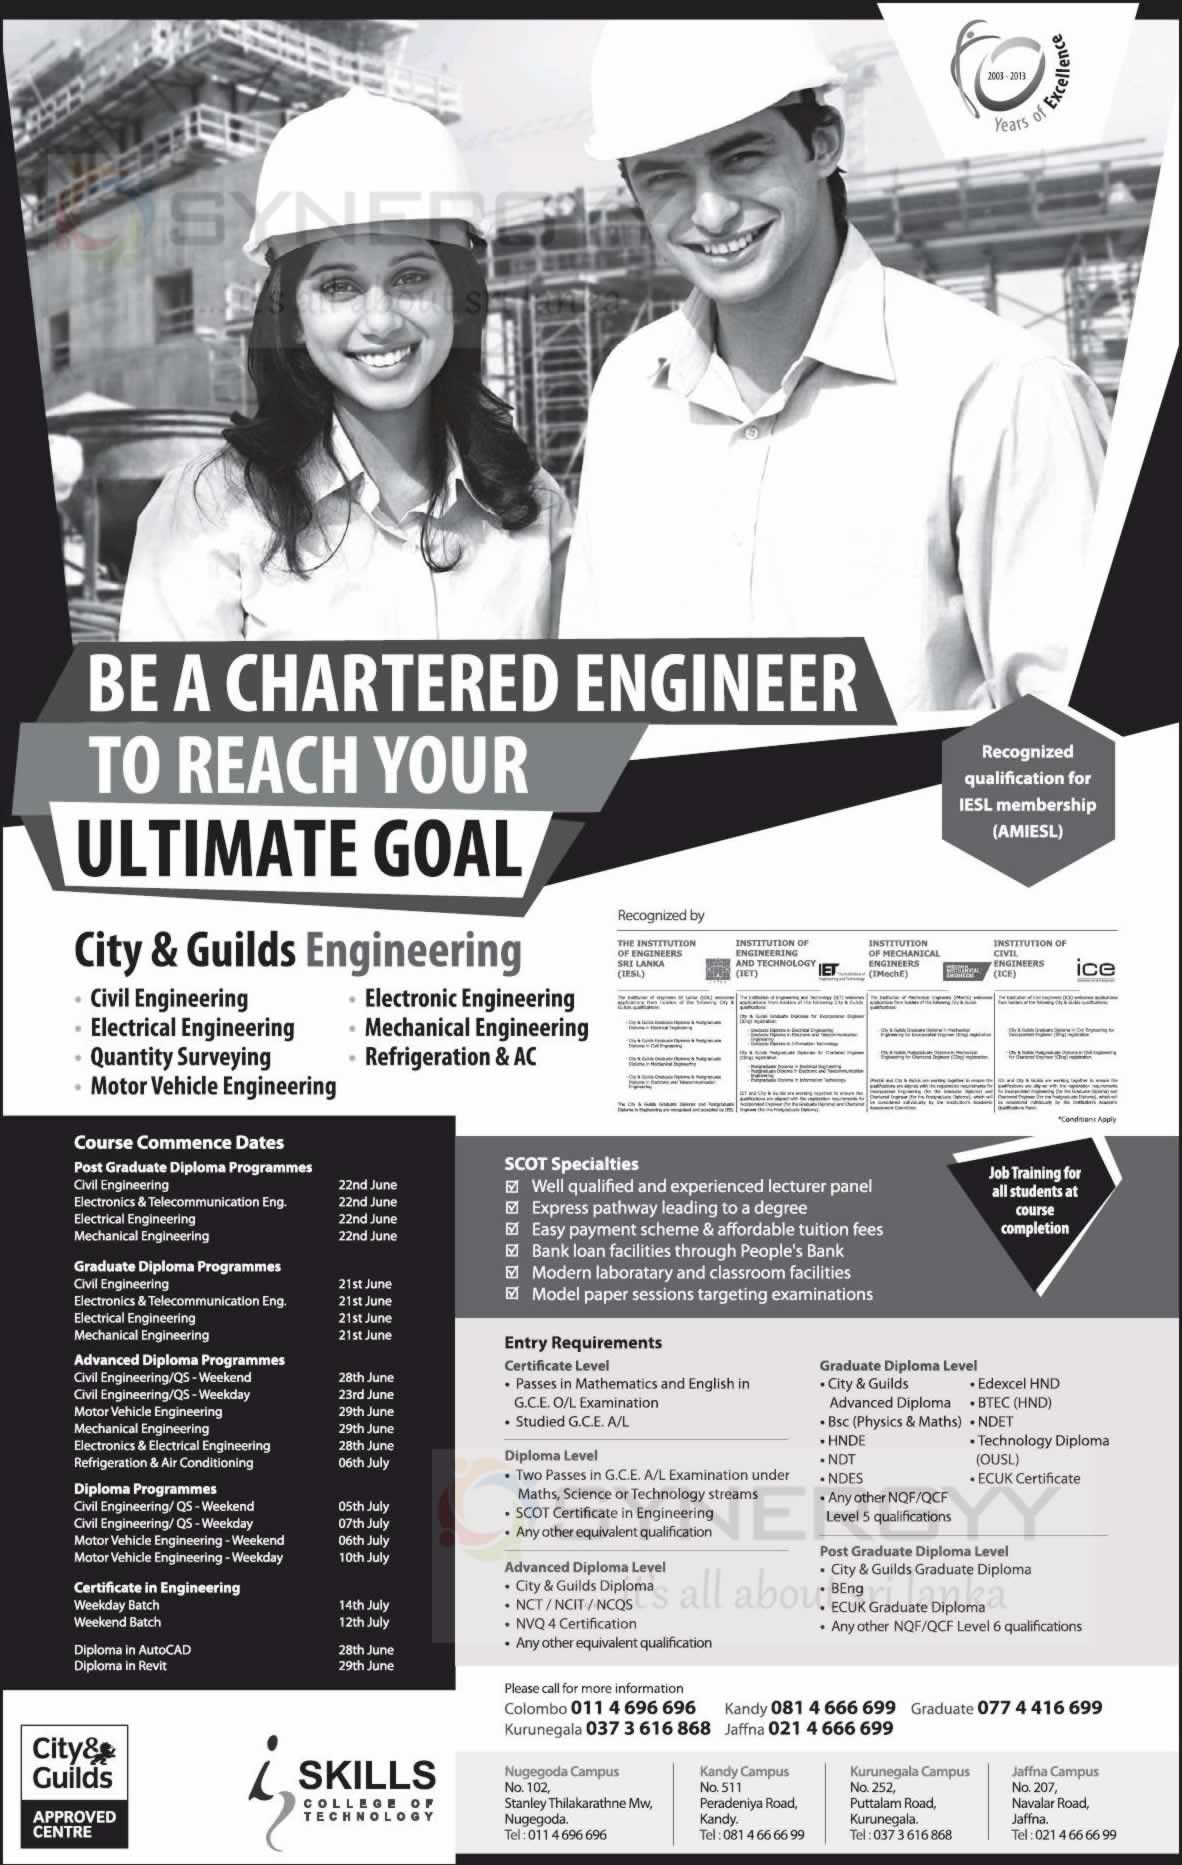 chartered engineer Find & apply online for the latest chartered engineer jobs with reedcouk, the uk's #1 job site.